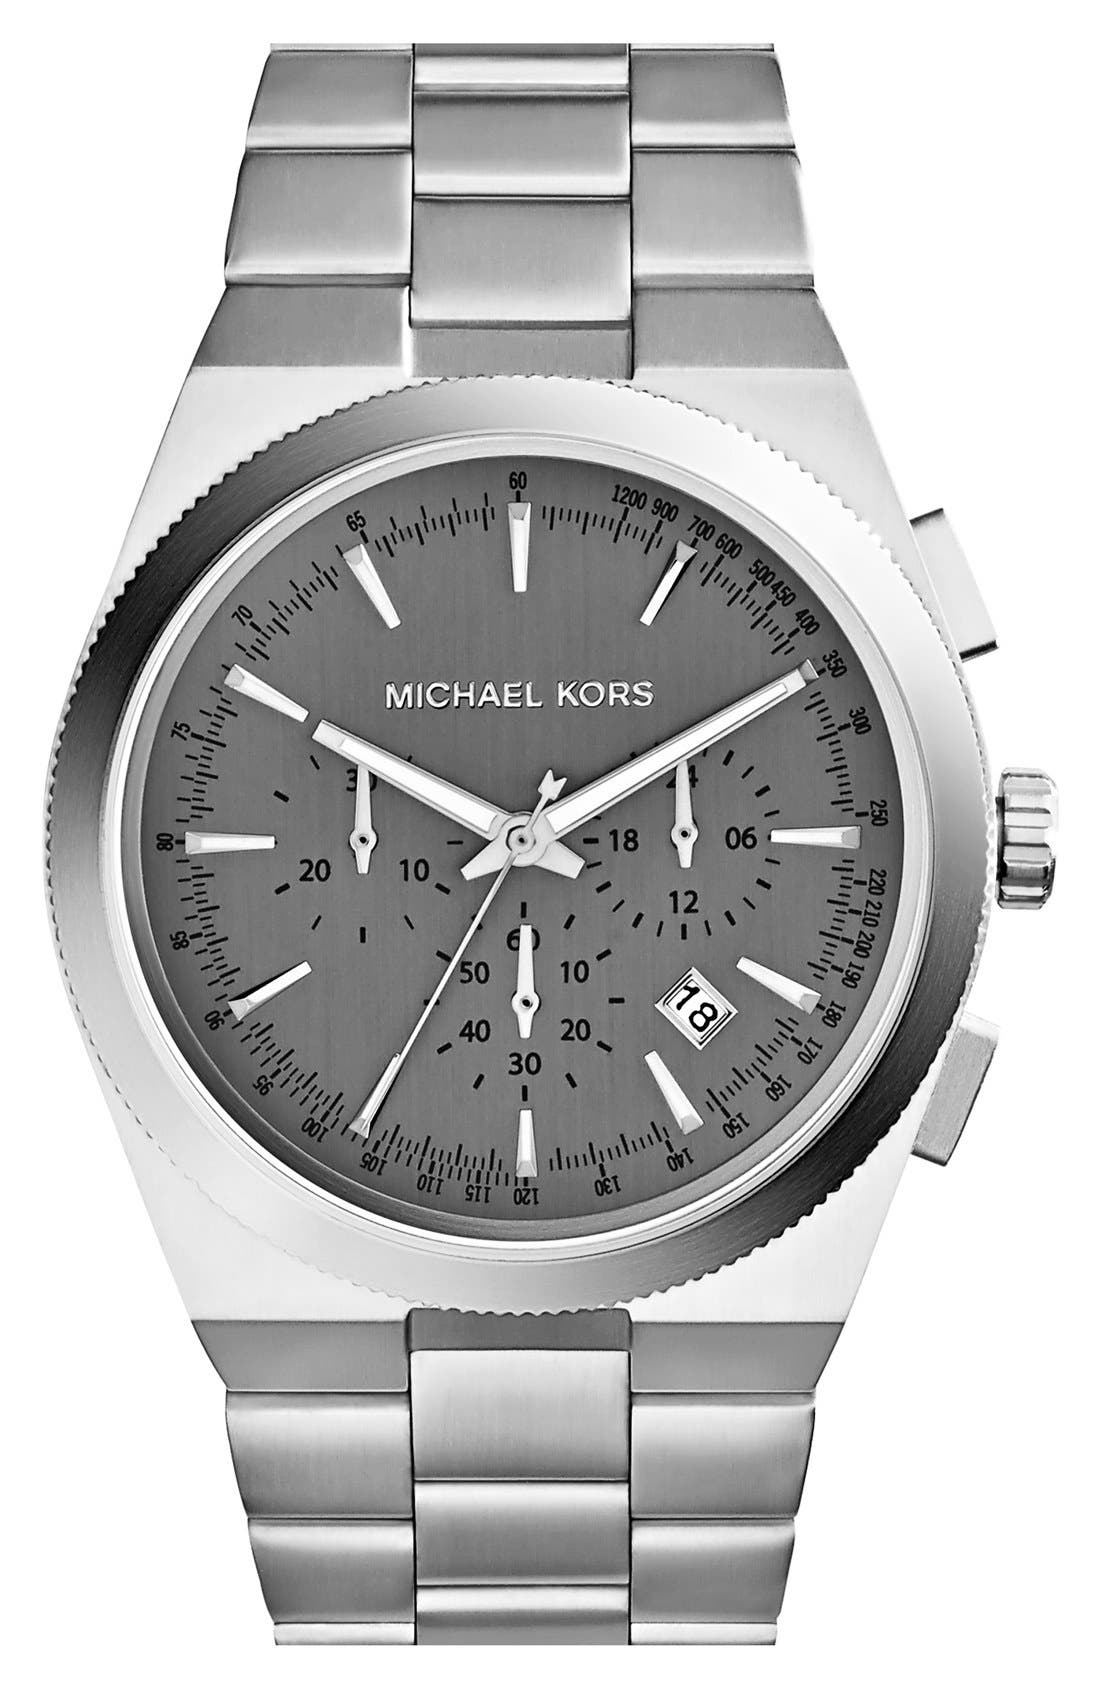 Main Image - Michael Kors 'Channing' Chronograph Bracelet Watch, 43mm